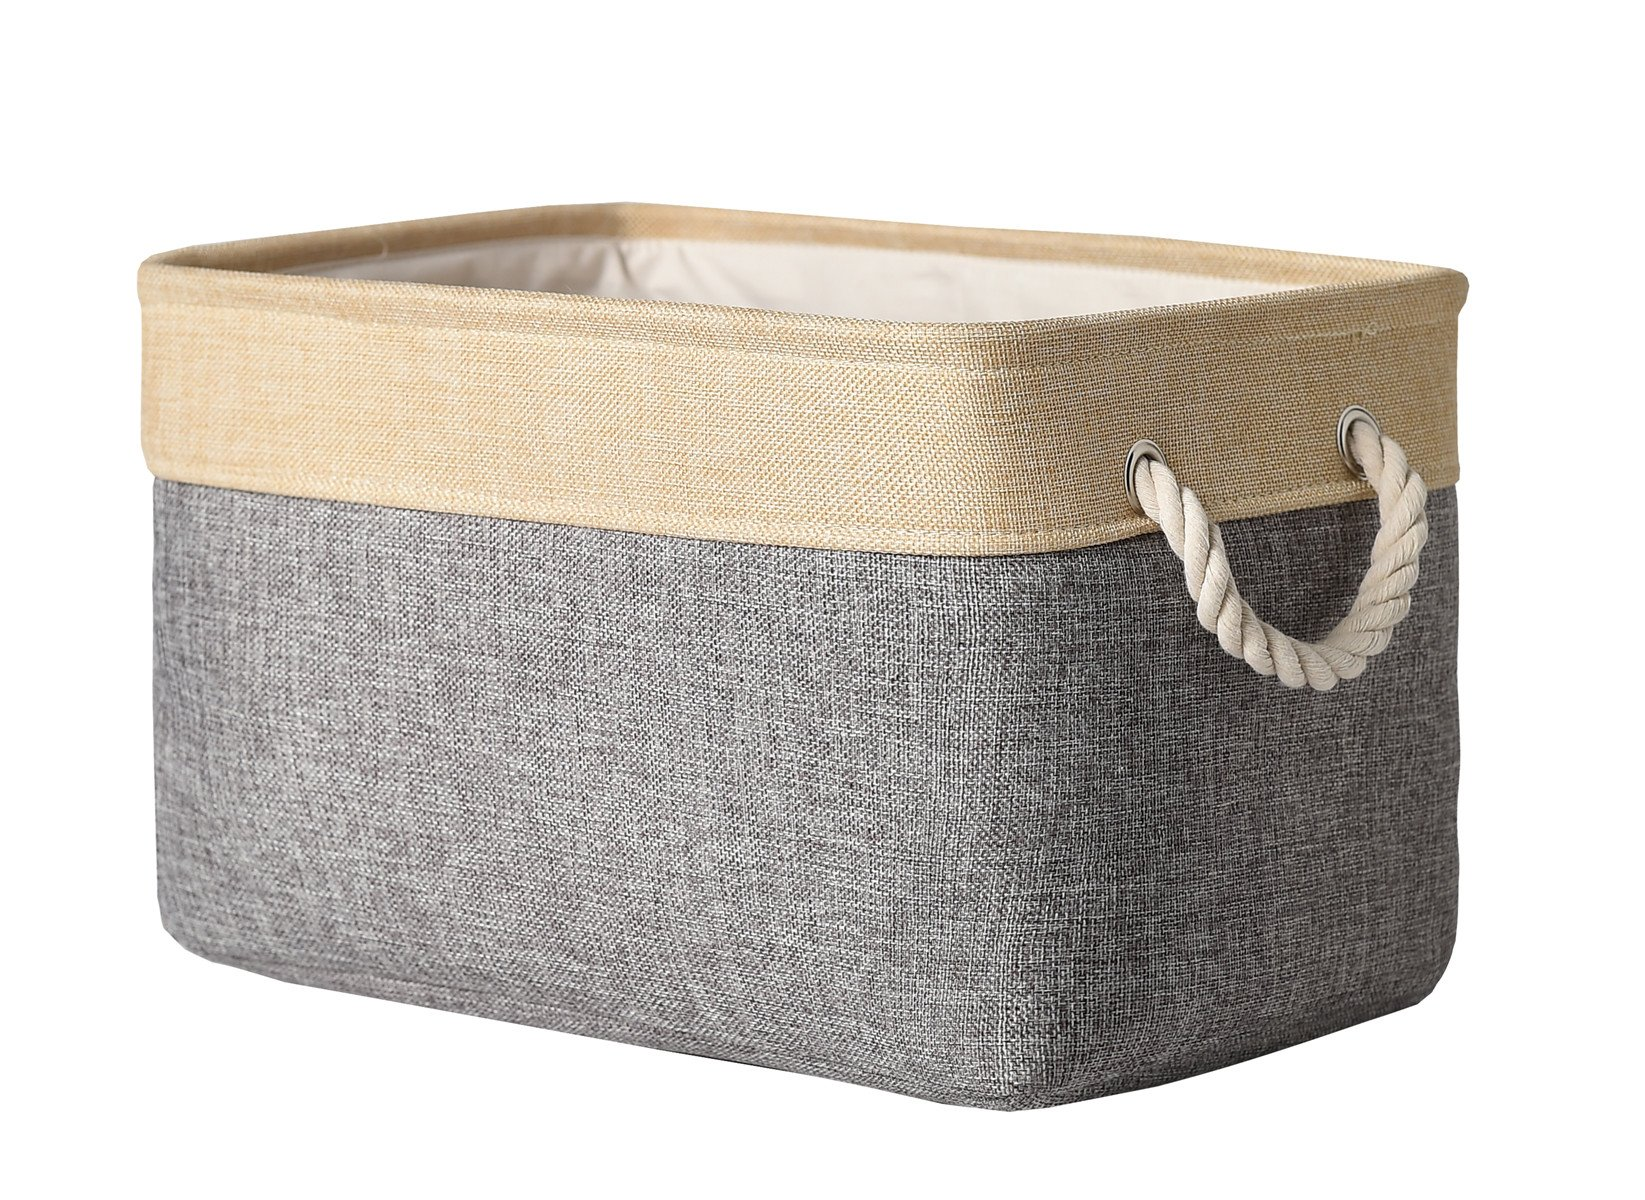 TheWarmHome Decorative Basket Rectangular Fabric Storage Bin Organizer Basket with Handles for Clothes Storage (Grey Patchwork, 15.7L×11.8W×8.3H)